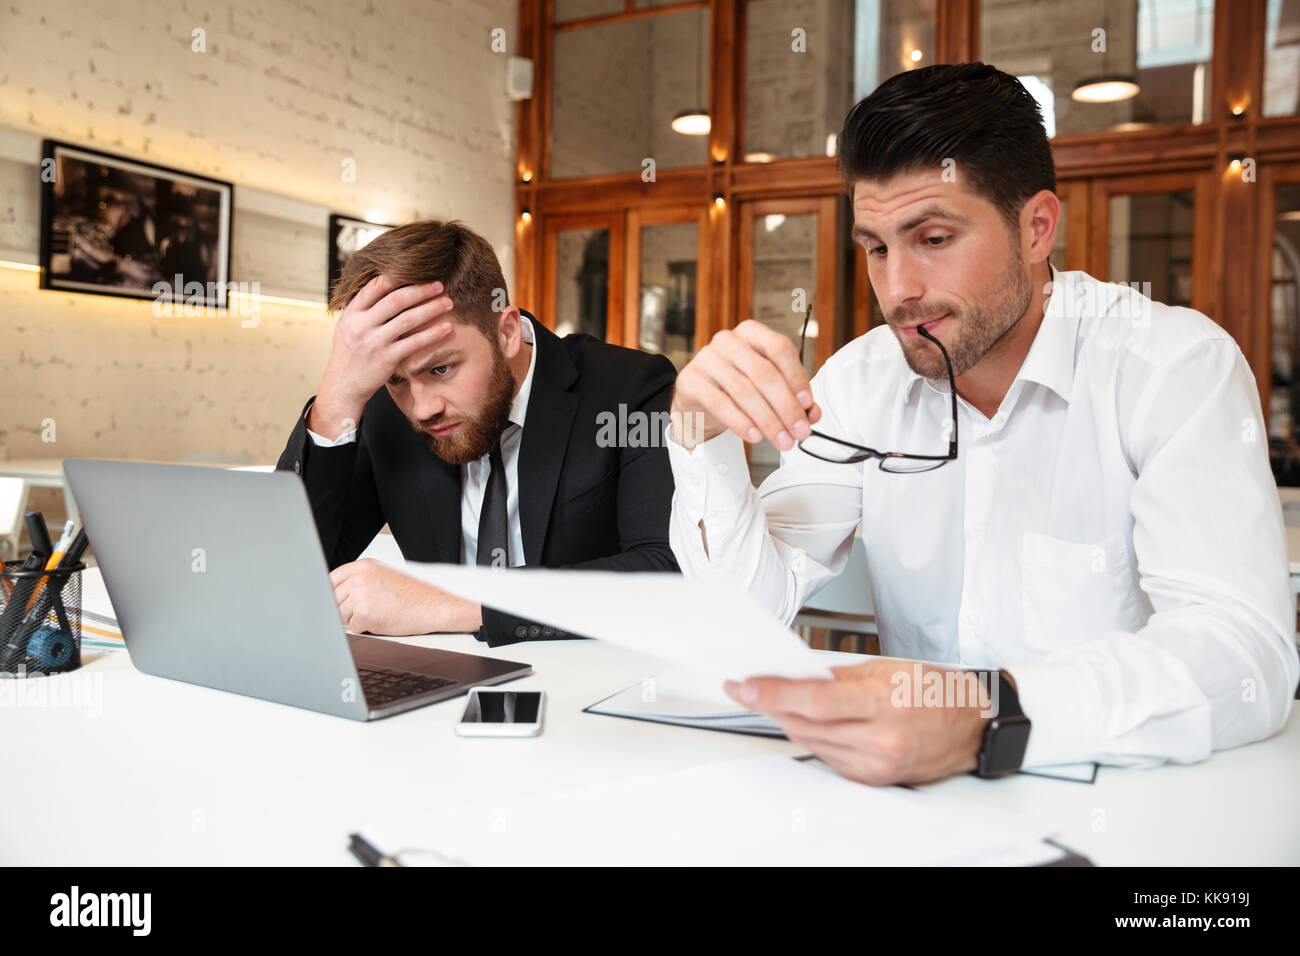 Two handsome bisinessman in formal wear working together while trying to solve problem in office - Stock Image